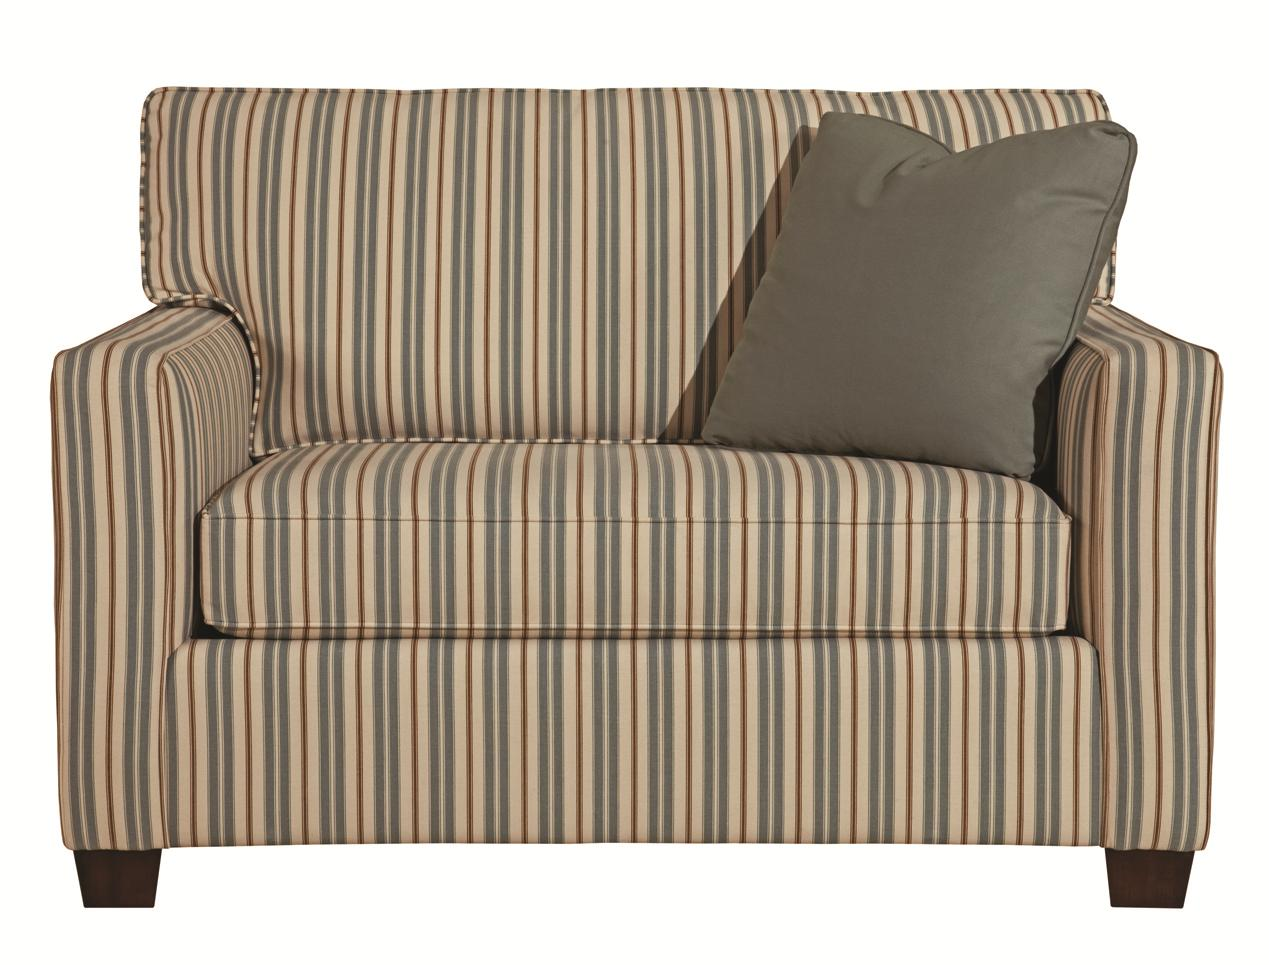 Brooke Sleeper Chair by Kincaid Furniture at Home Collections Furniture